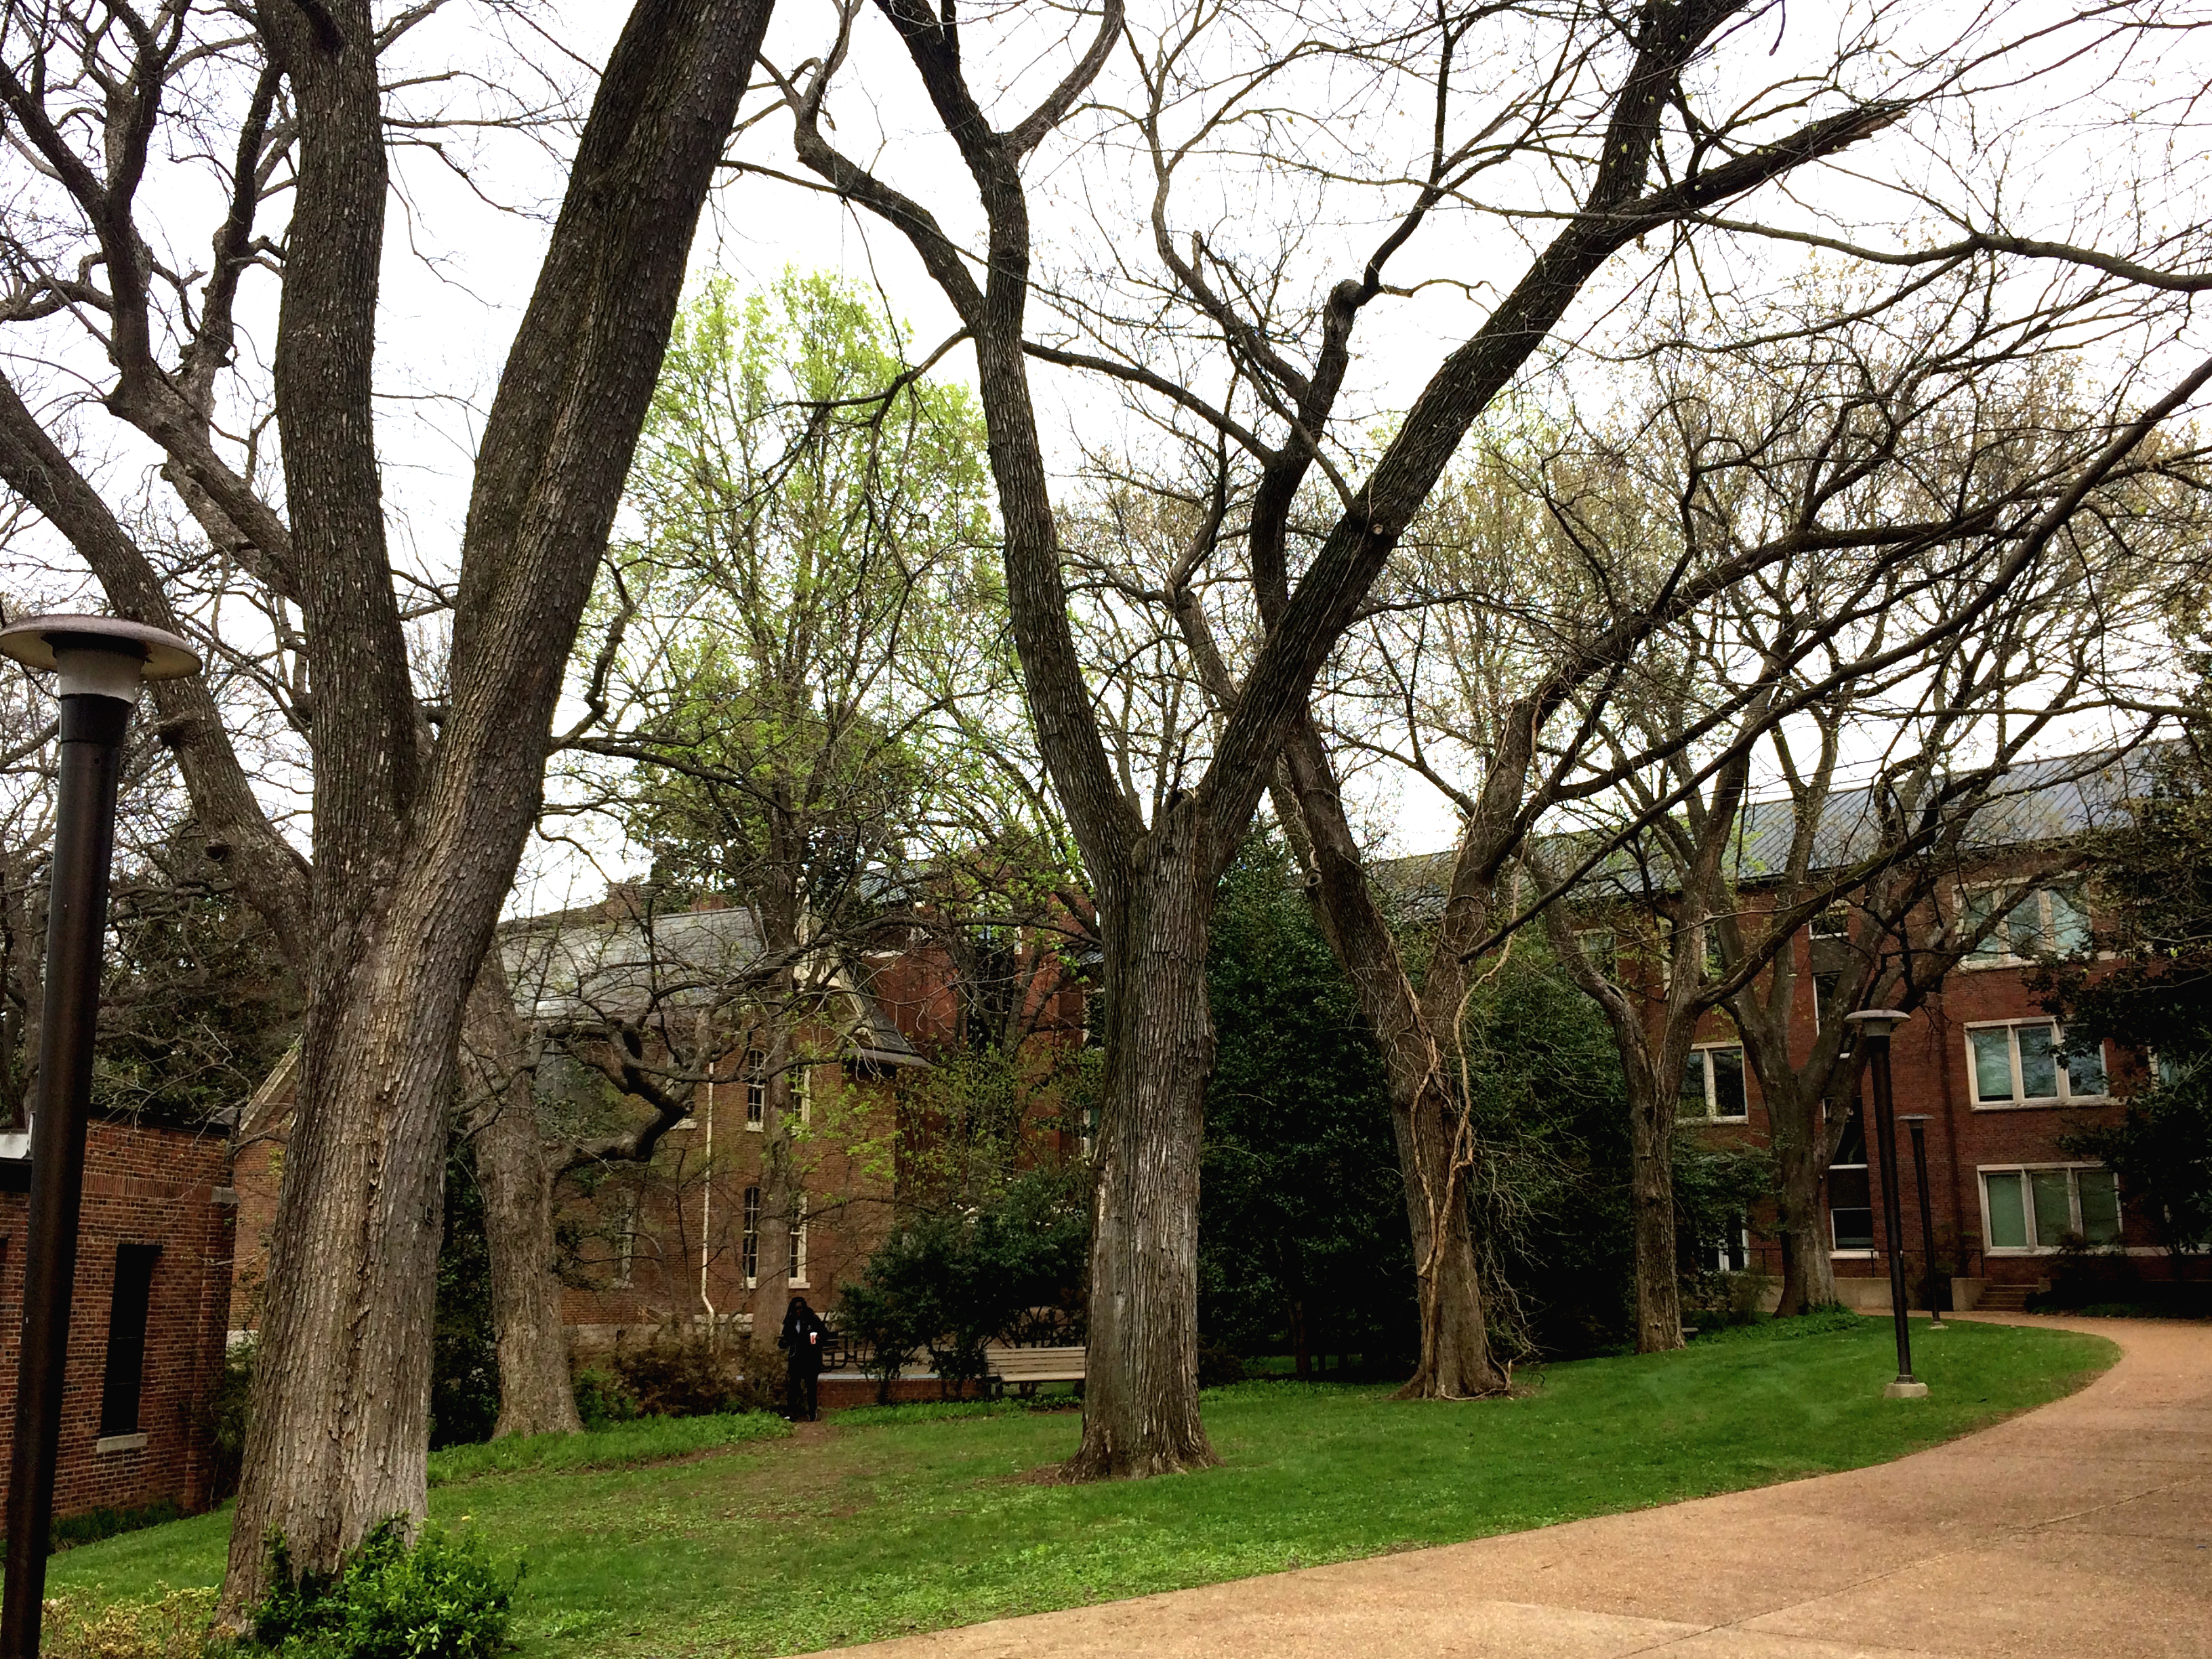 Hundred year-old elms near the Vaughn Home